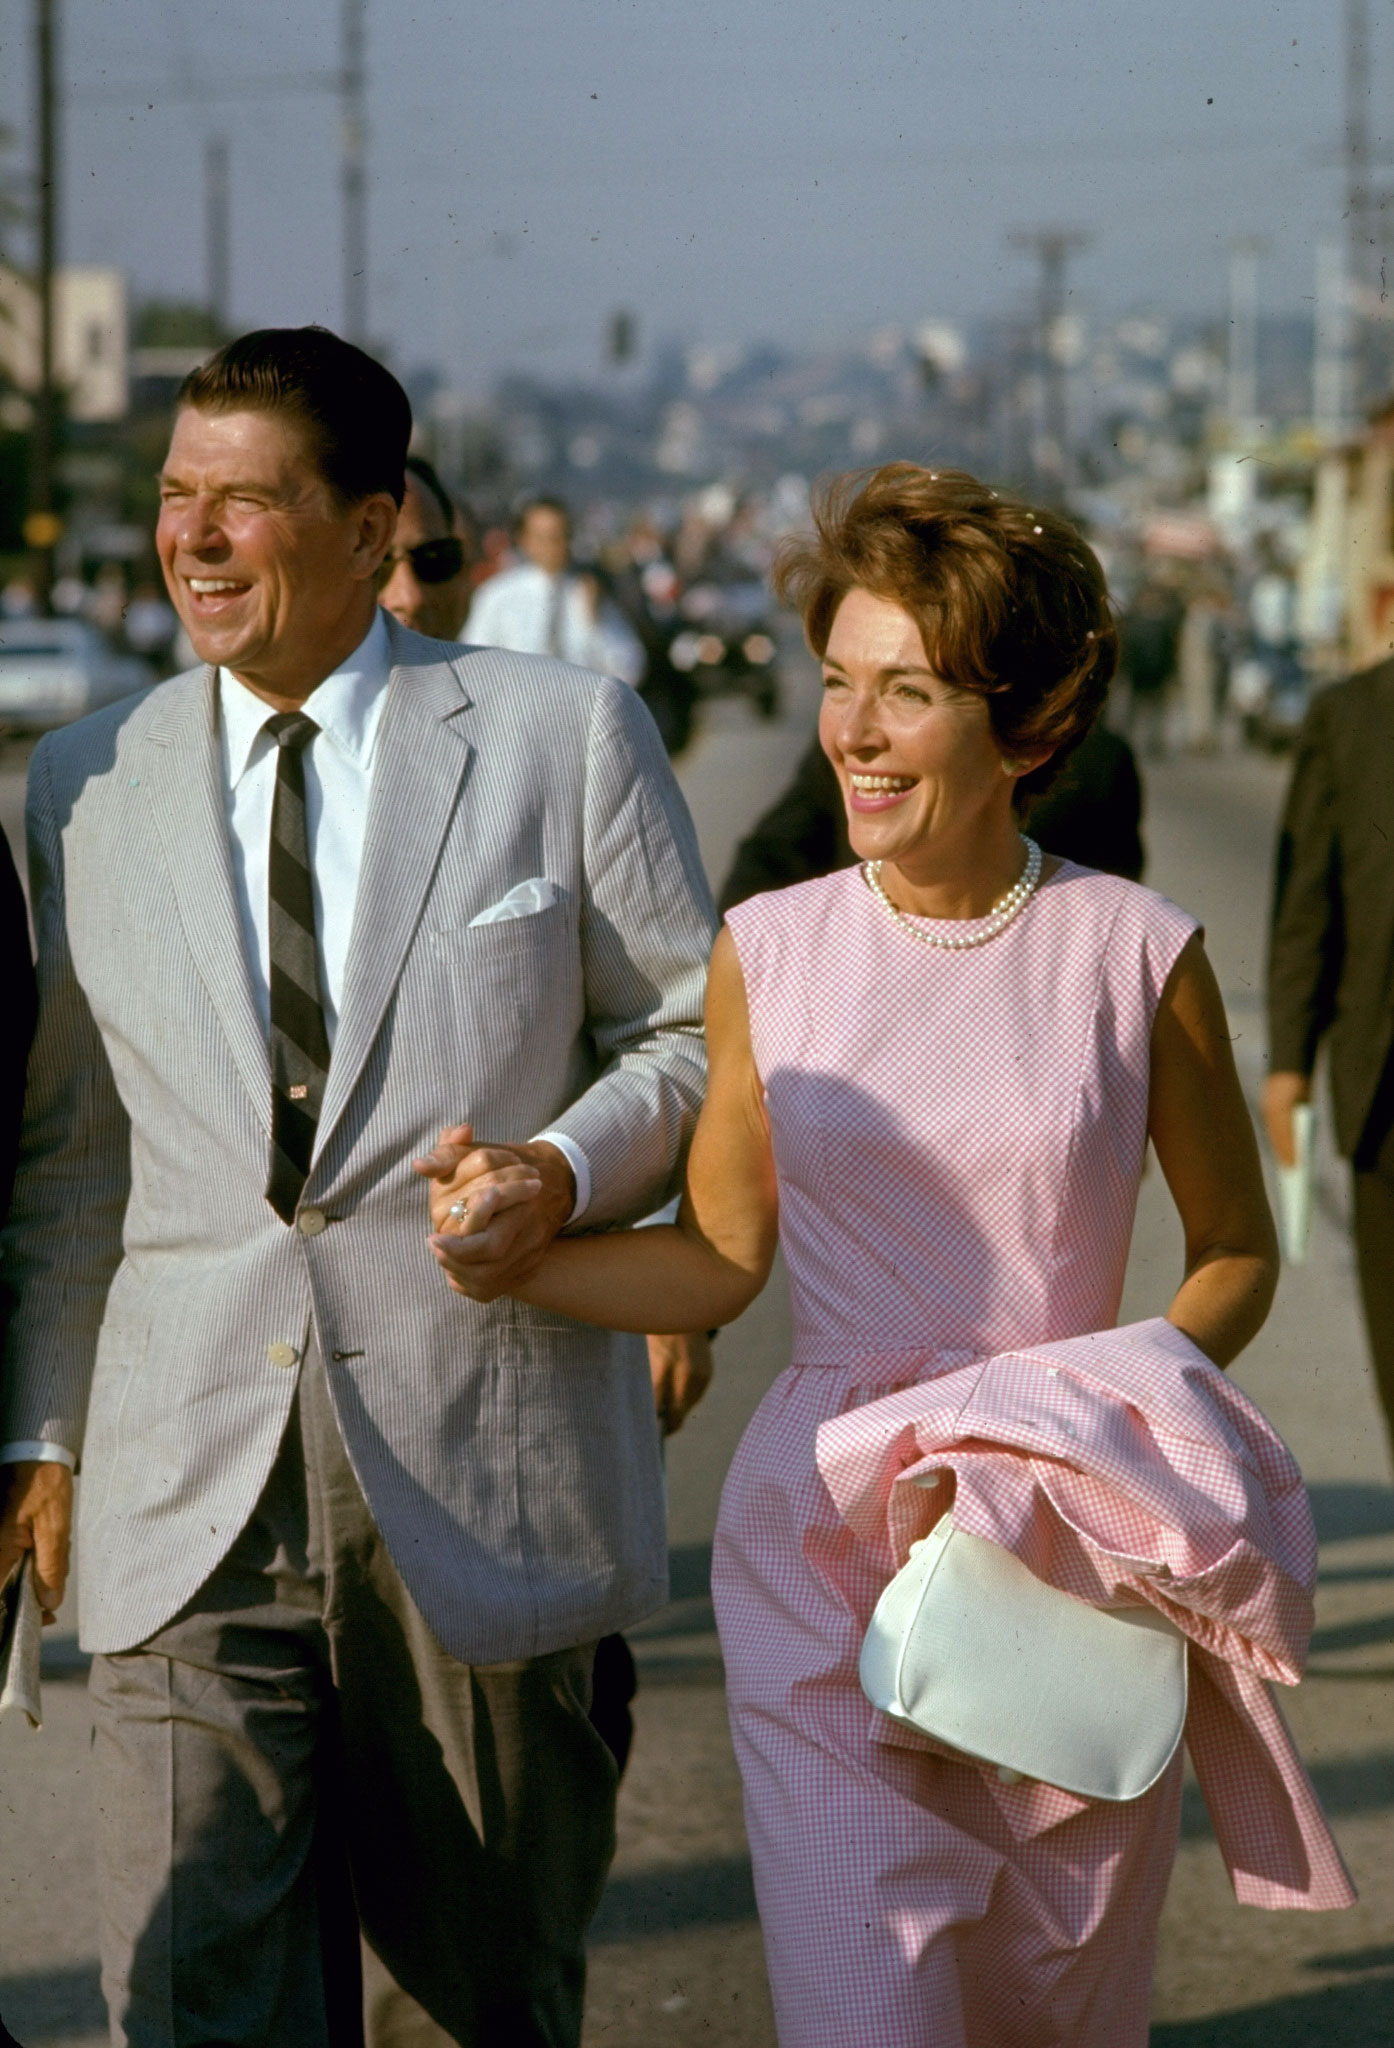 California gubernatorial candidate Ronald Reagan holding hands with wife Nancy while on the campaign trail, 1966.